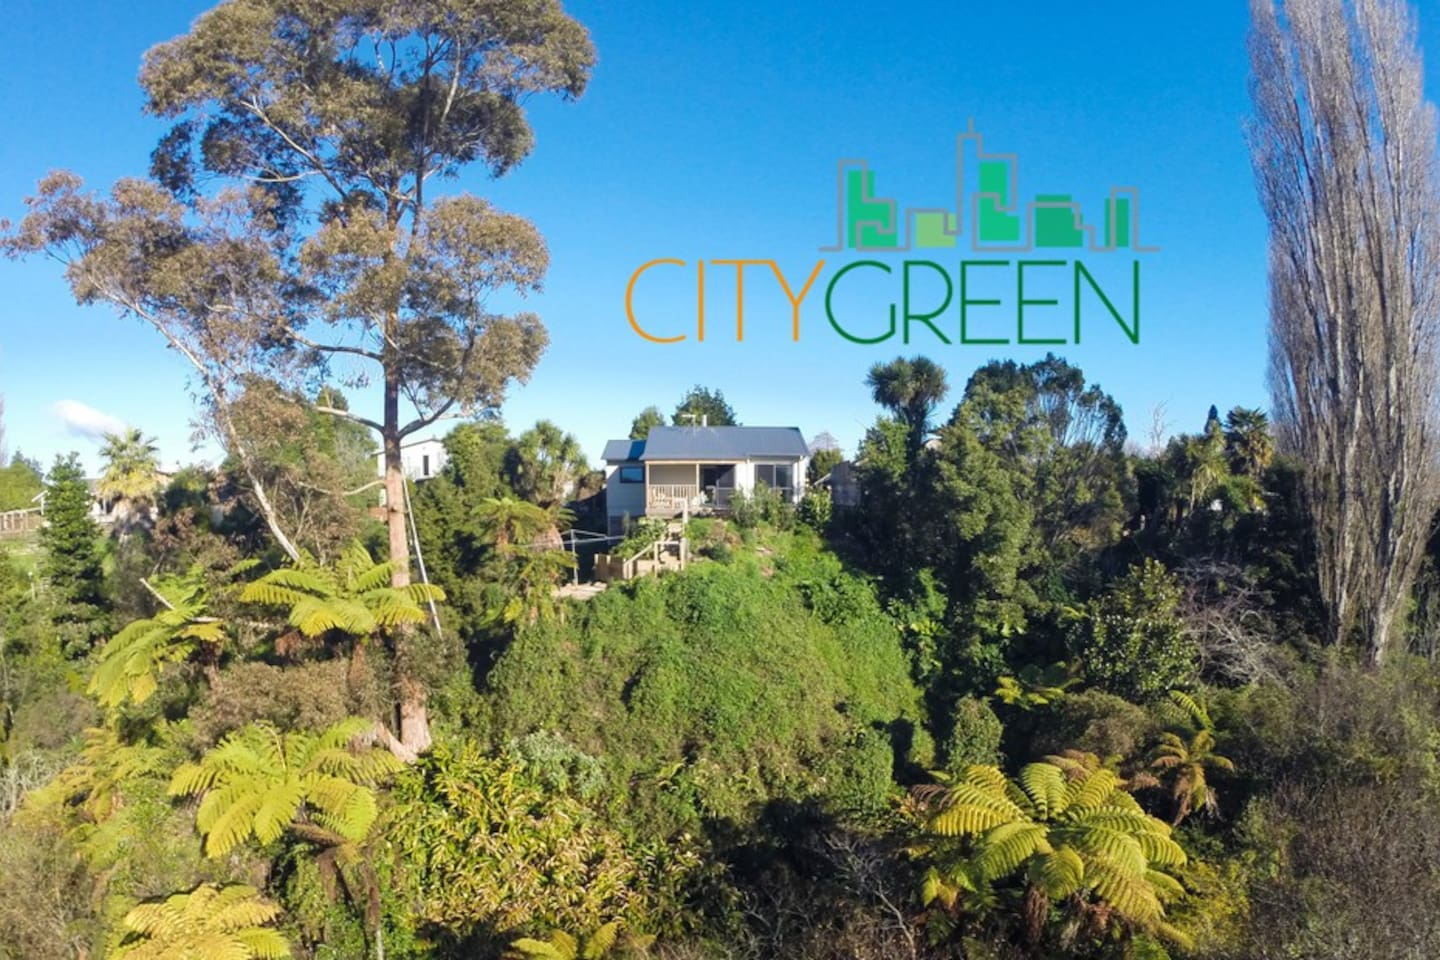 City Green locates heart of Hamilton with wonderful outlook over the valley